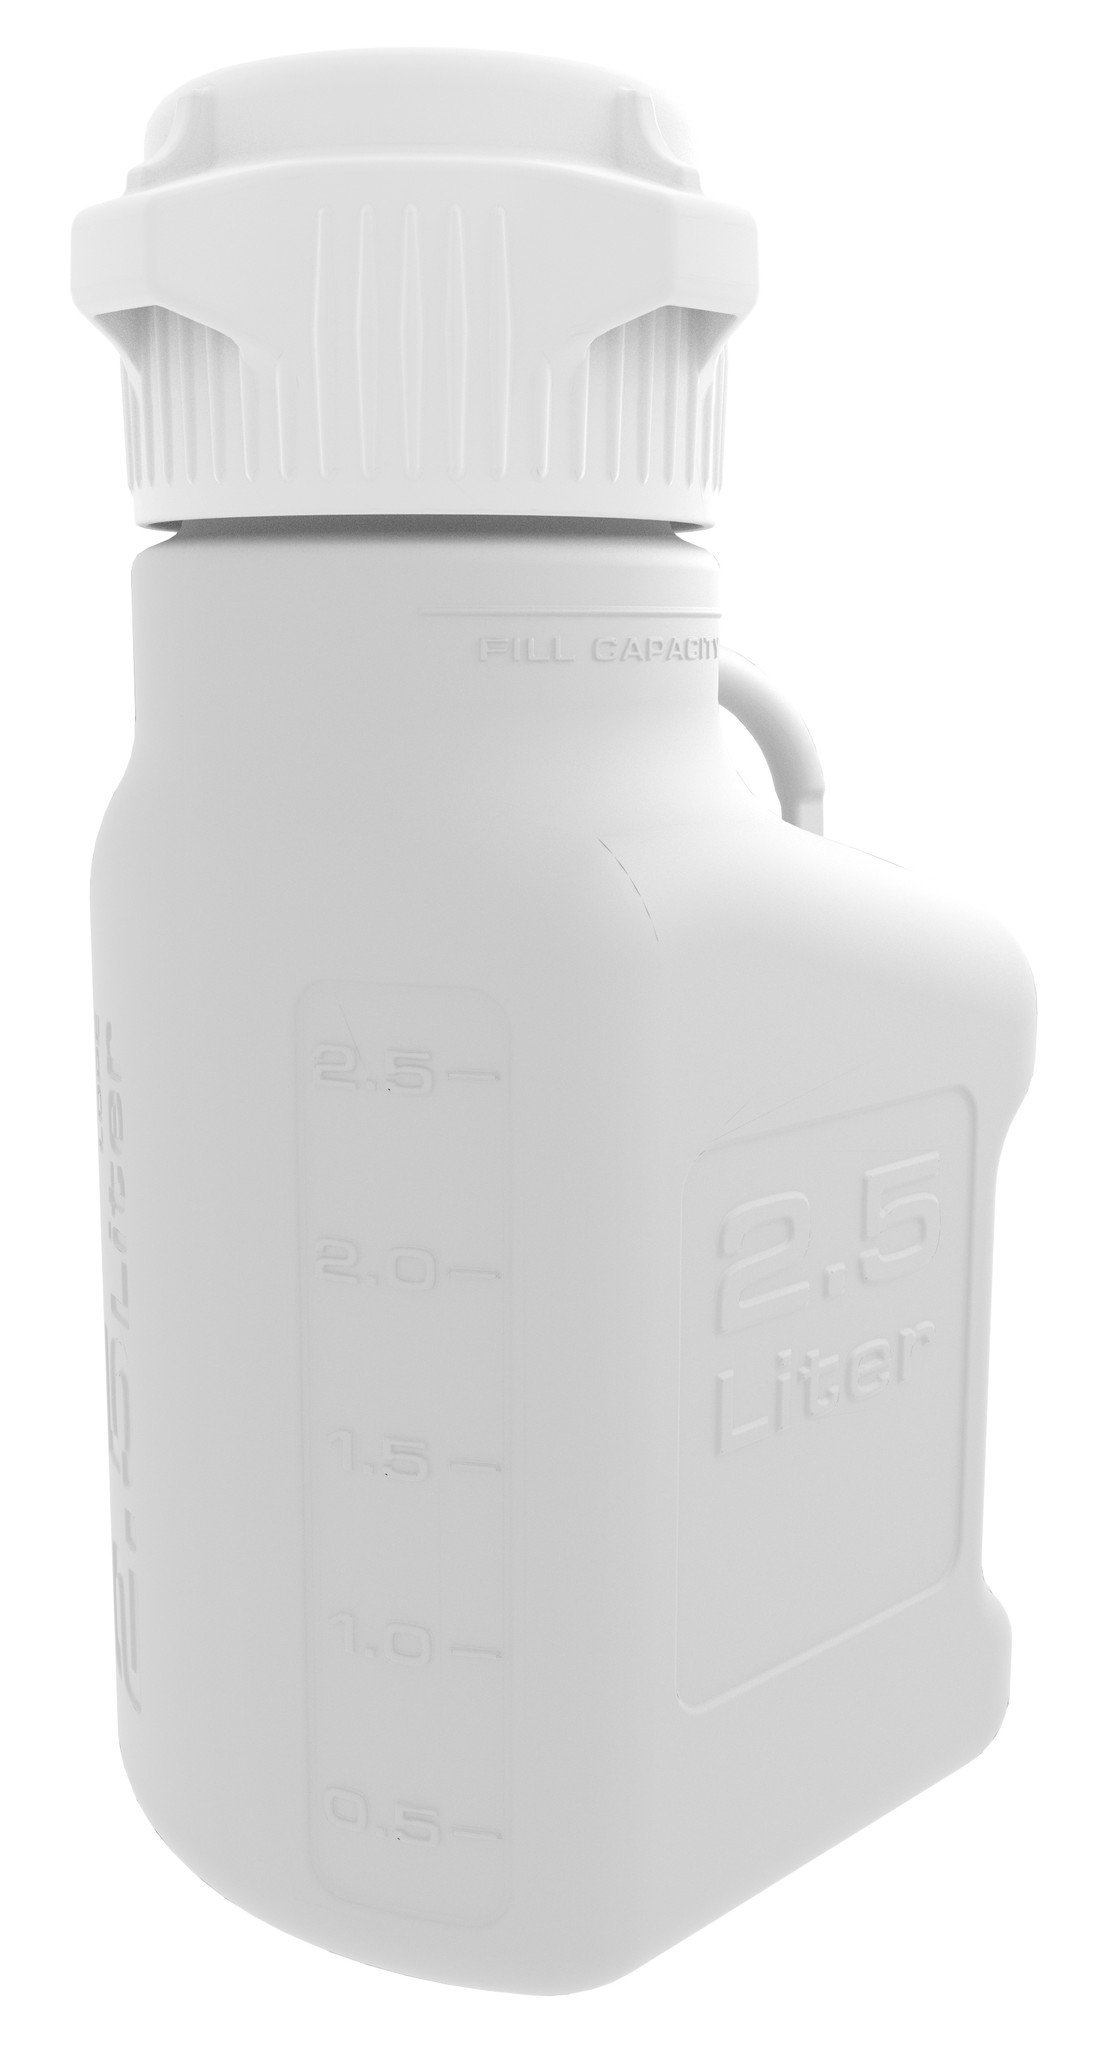 EZgrip 2.5L (0.5 Gal) HDPE Space Saving Carboy with 83mm (83B) VersaCap and 3.25L Max Capacity, Large Pinched Handles